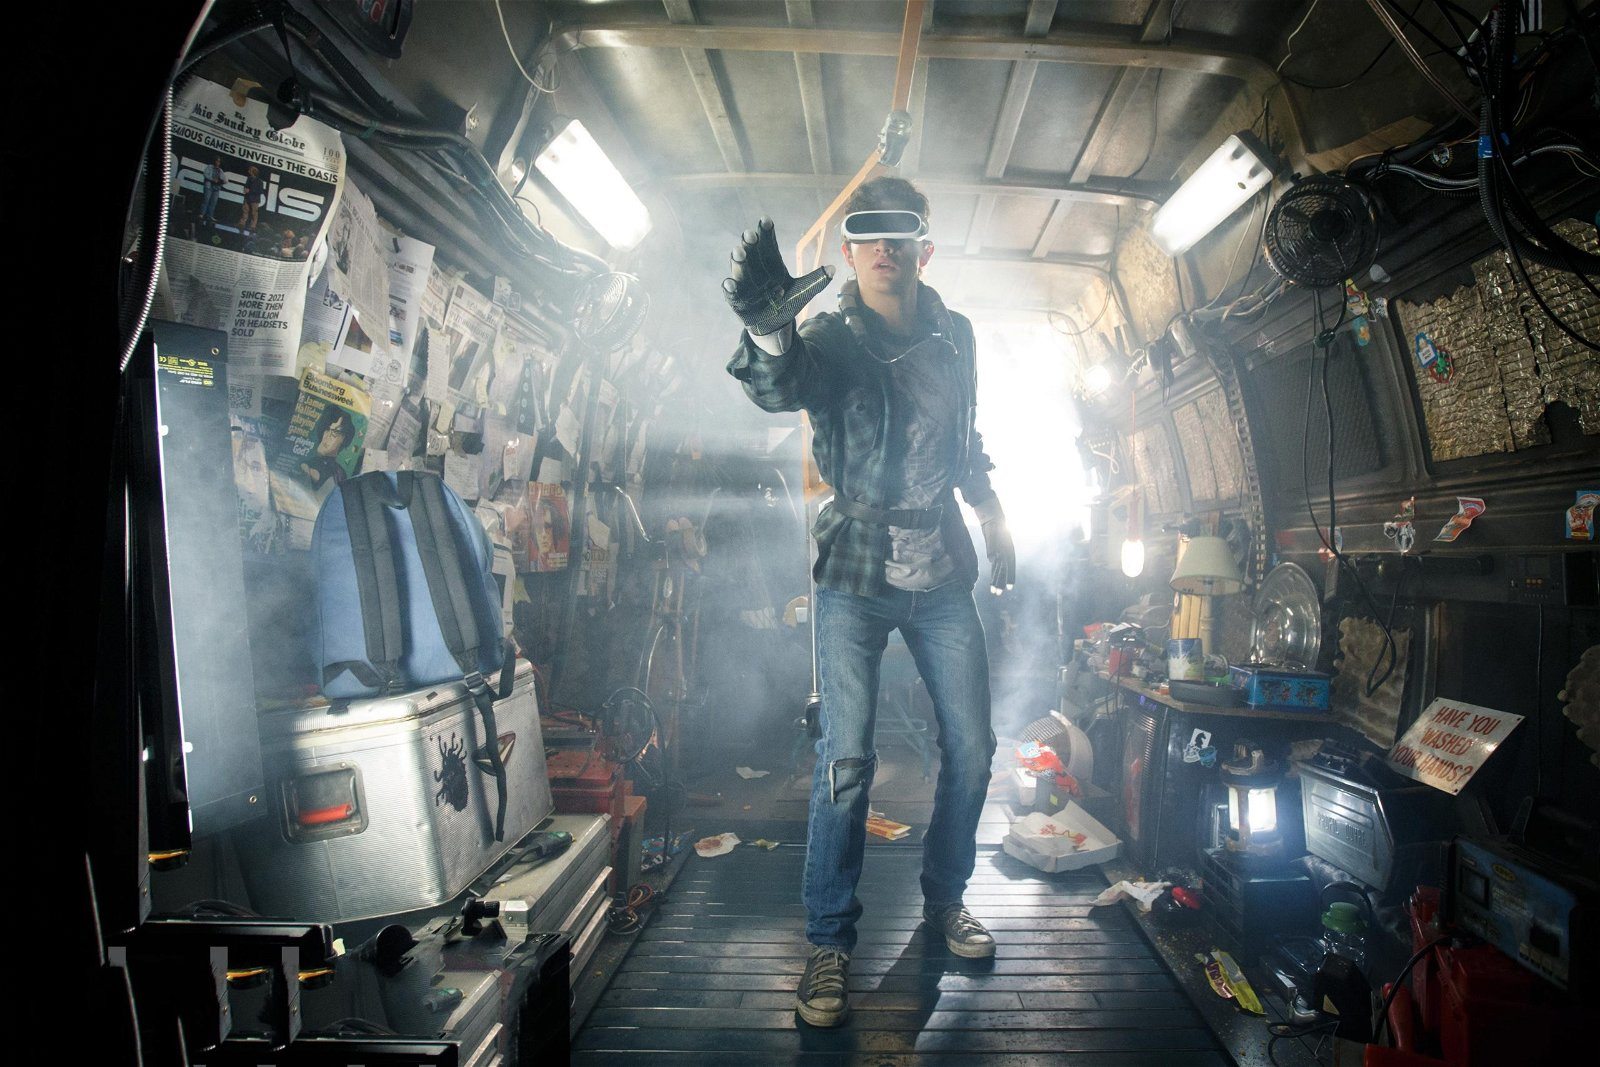 Ready Player Two Live Bigscreen VR Event With Ernest Cline Announced